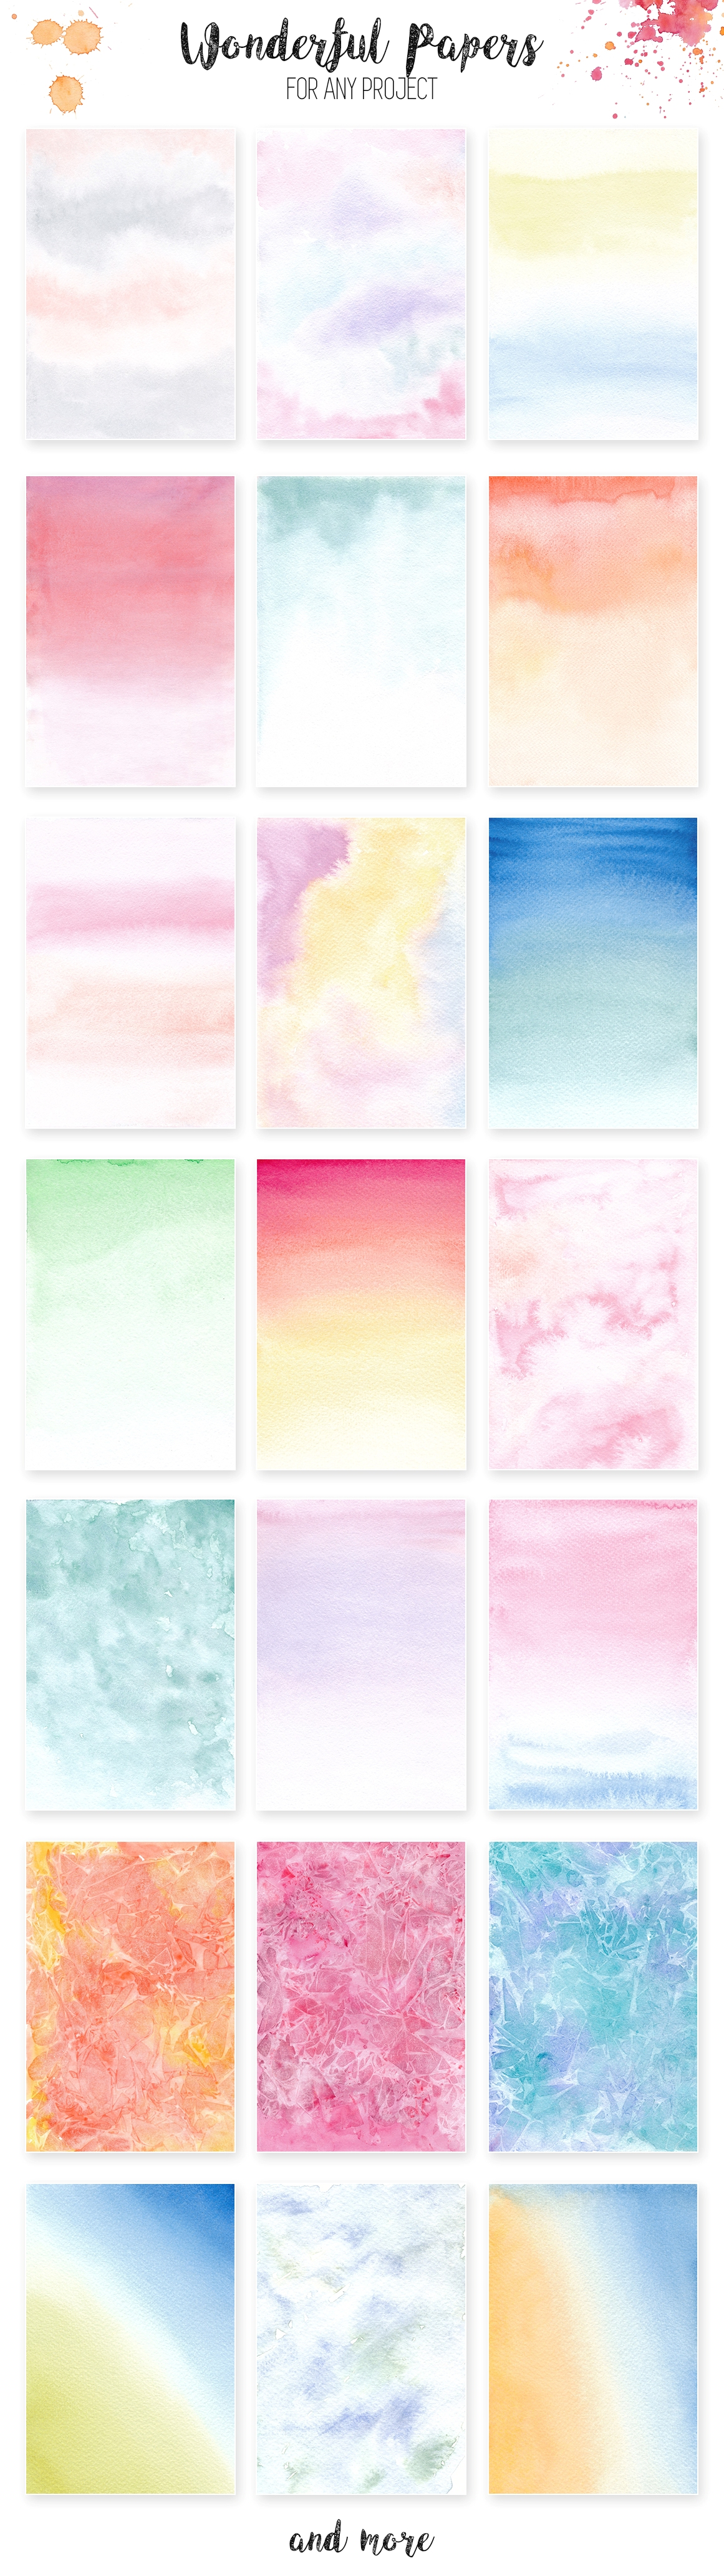 Watercolor Textures. Light & Bright example image 5